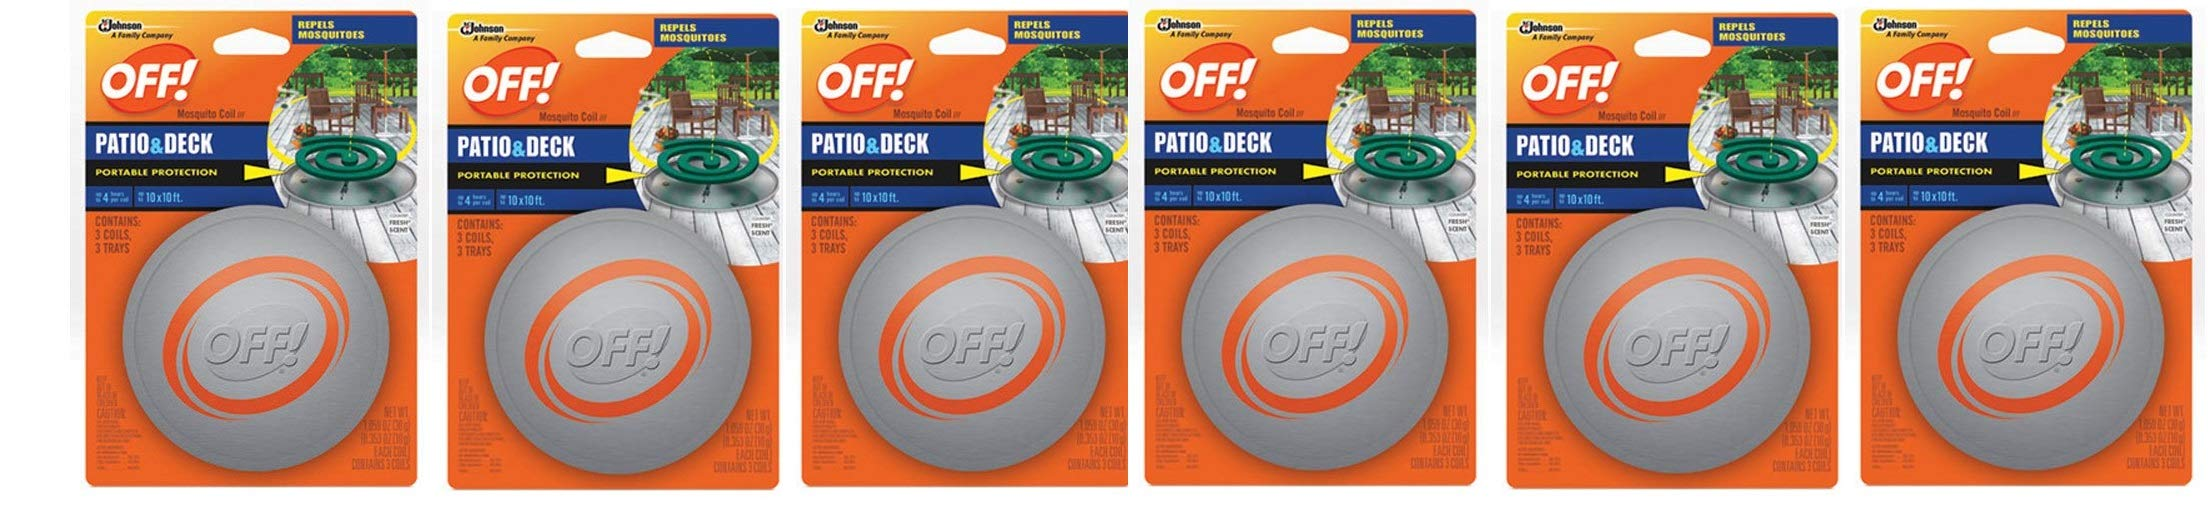 SC Johnson OFF! Patio And Deck Coil Tin (Pack - 6)